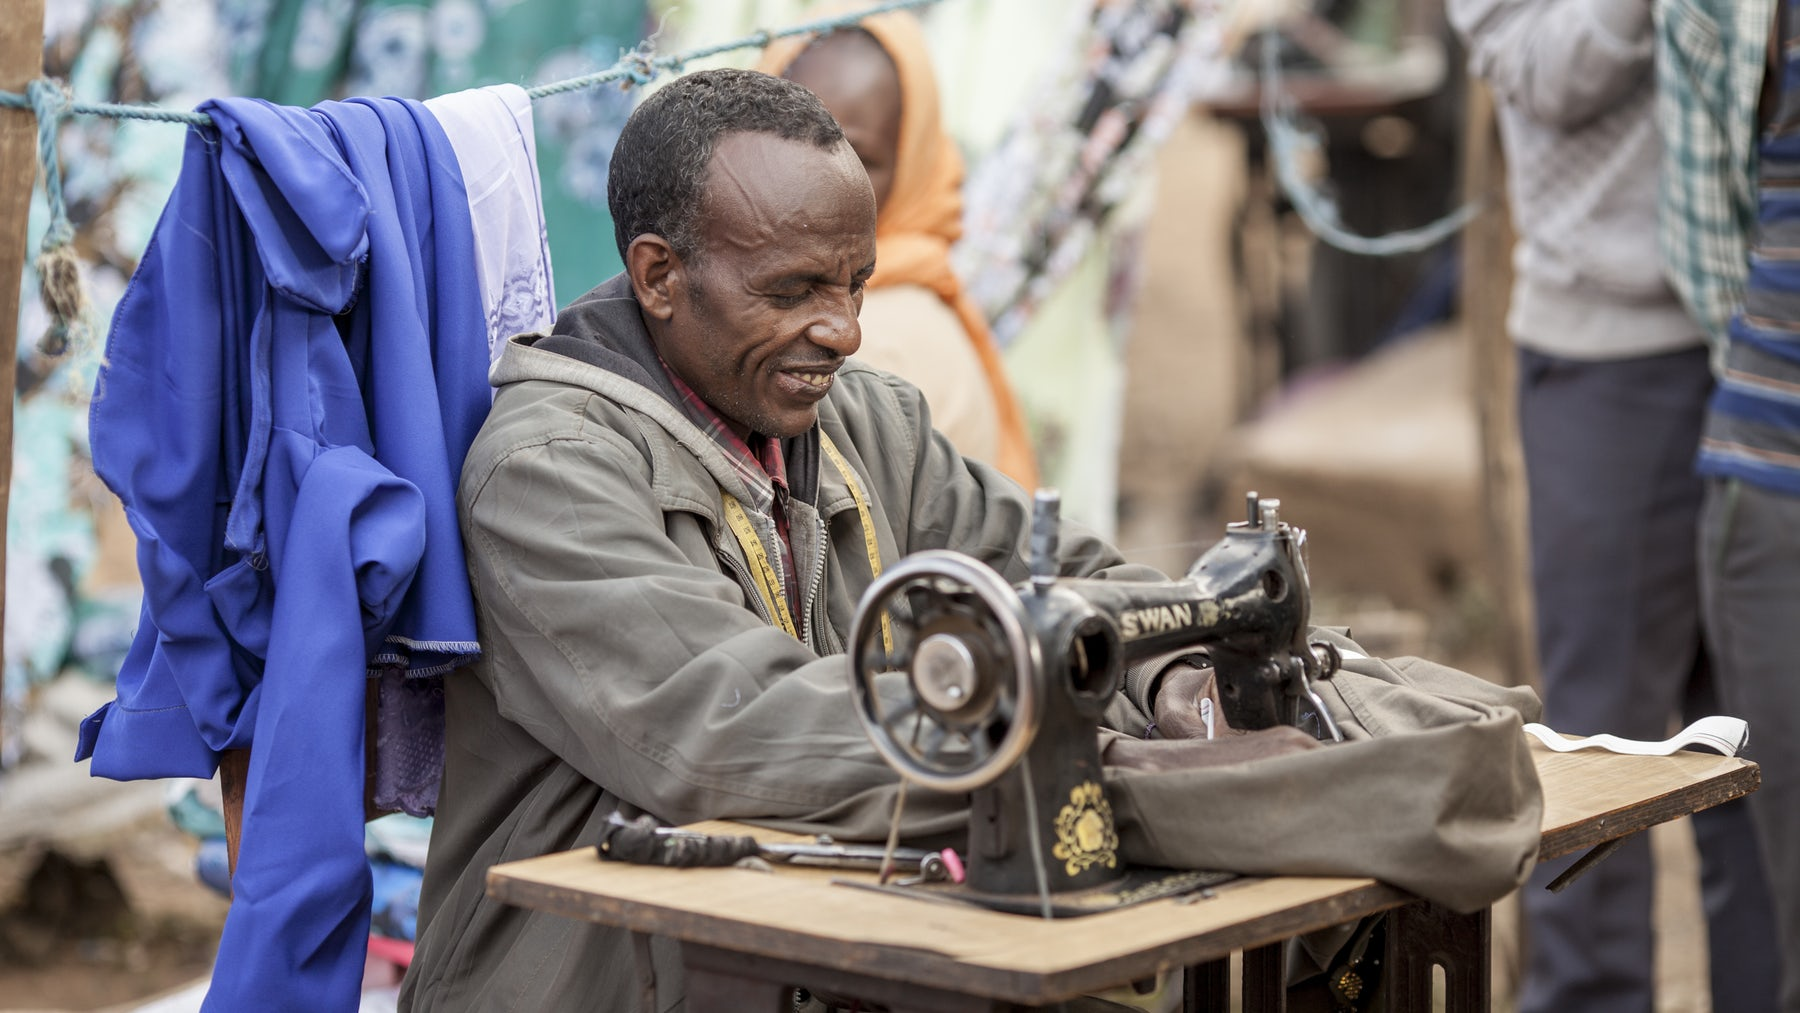 Fast-fashion factory worker in Ethiopia | Source: Shutterstock